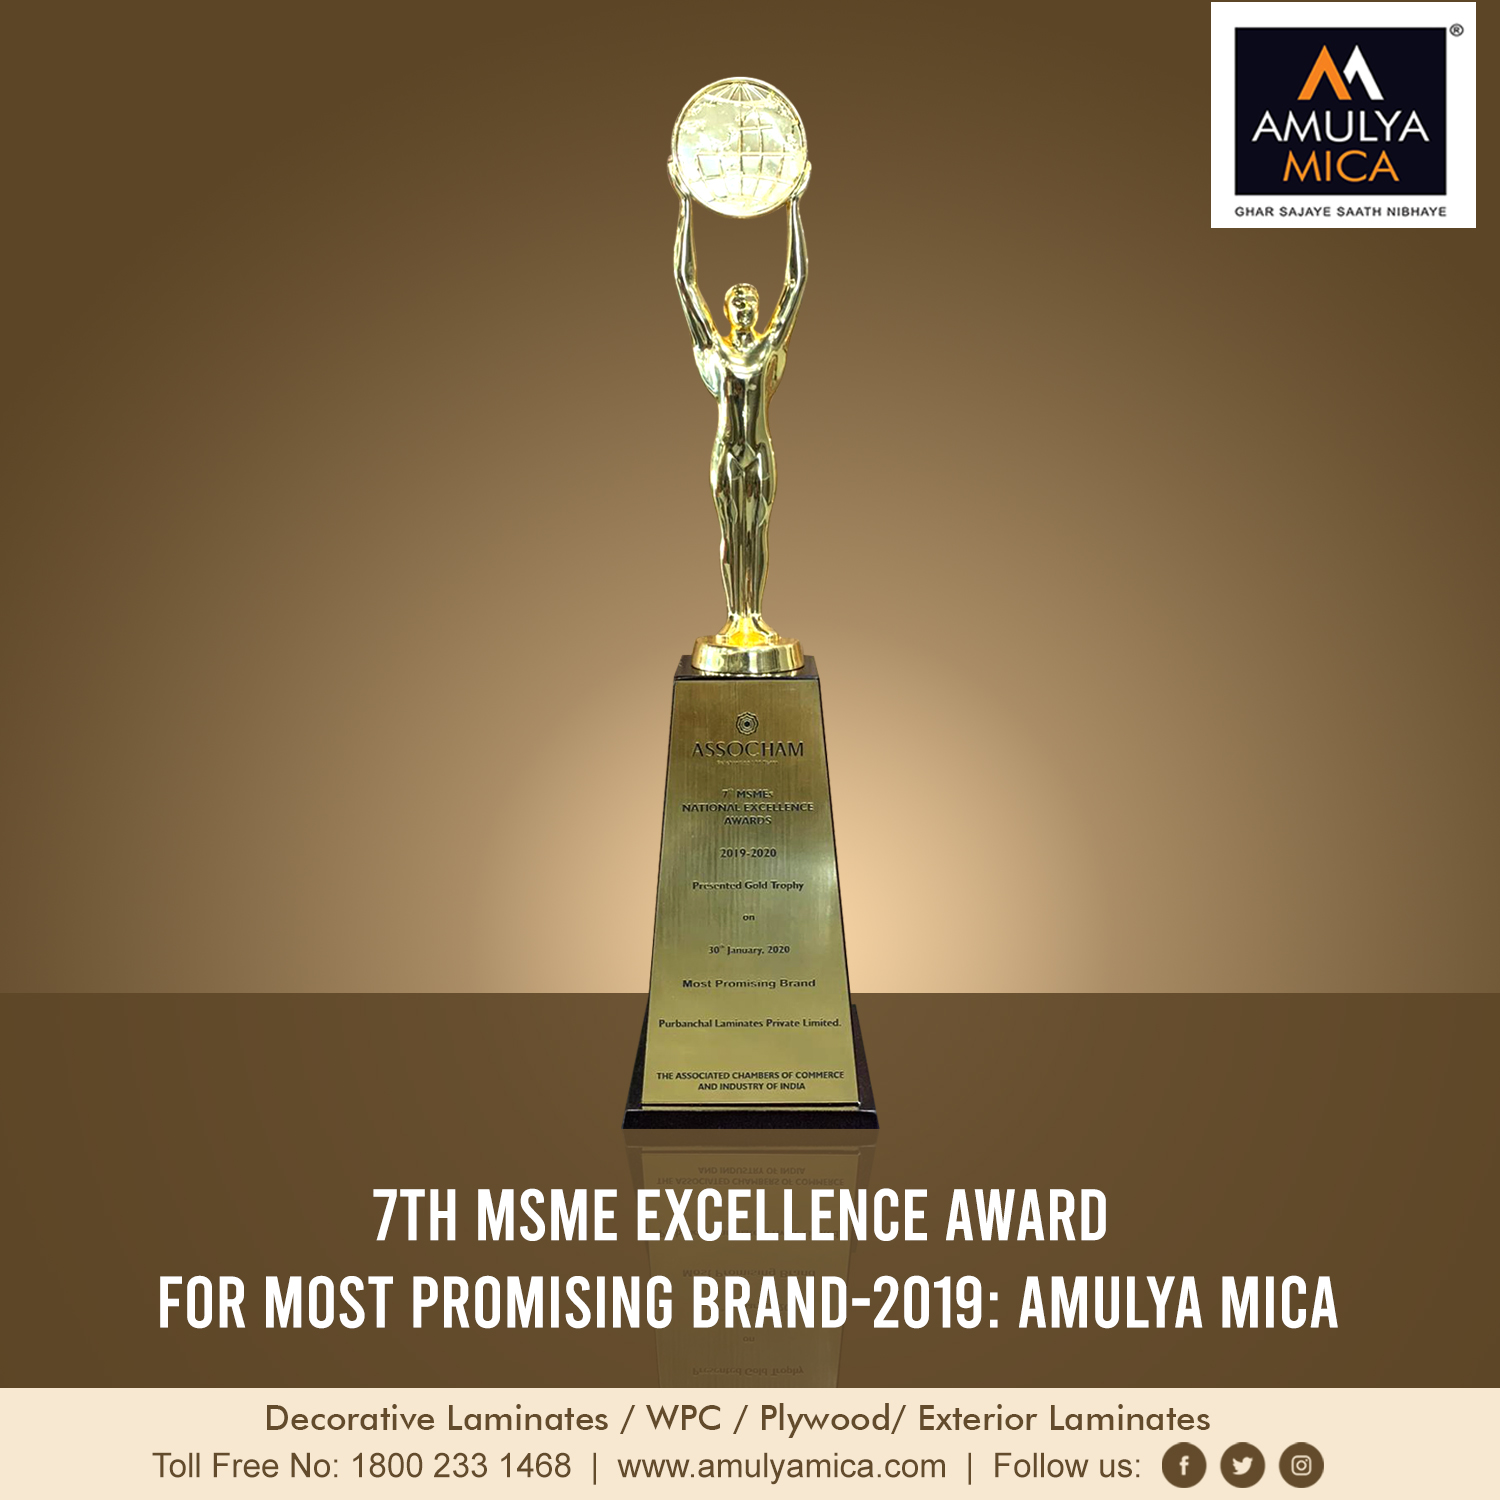 7th MSME EXCELLENCE AWARD FOR MOST PROMISING BRAND 2019